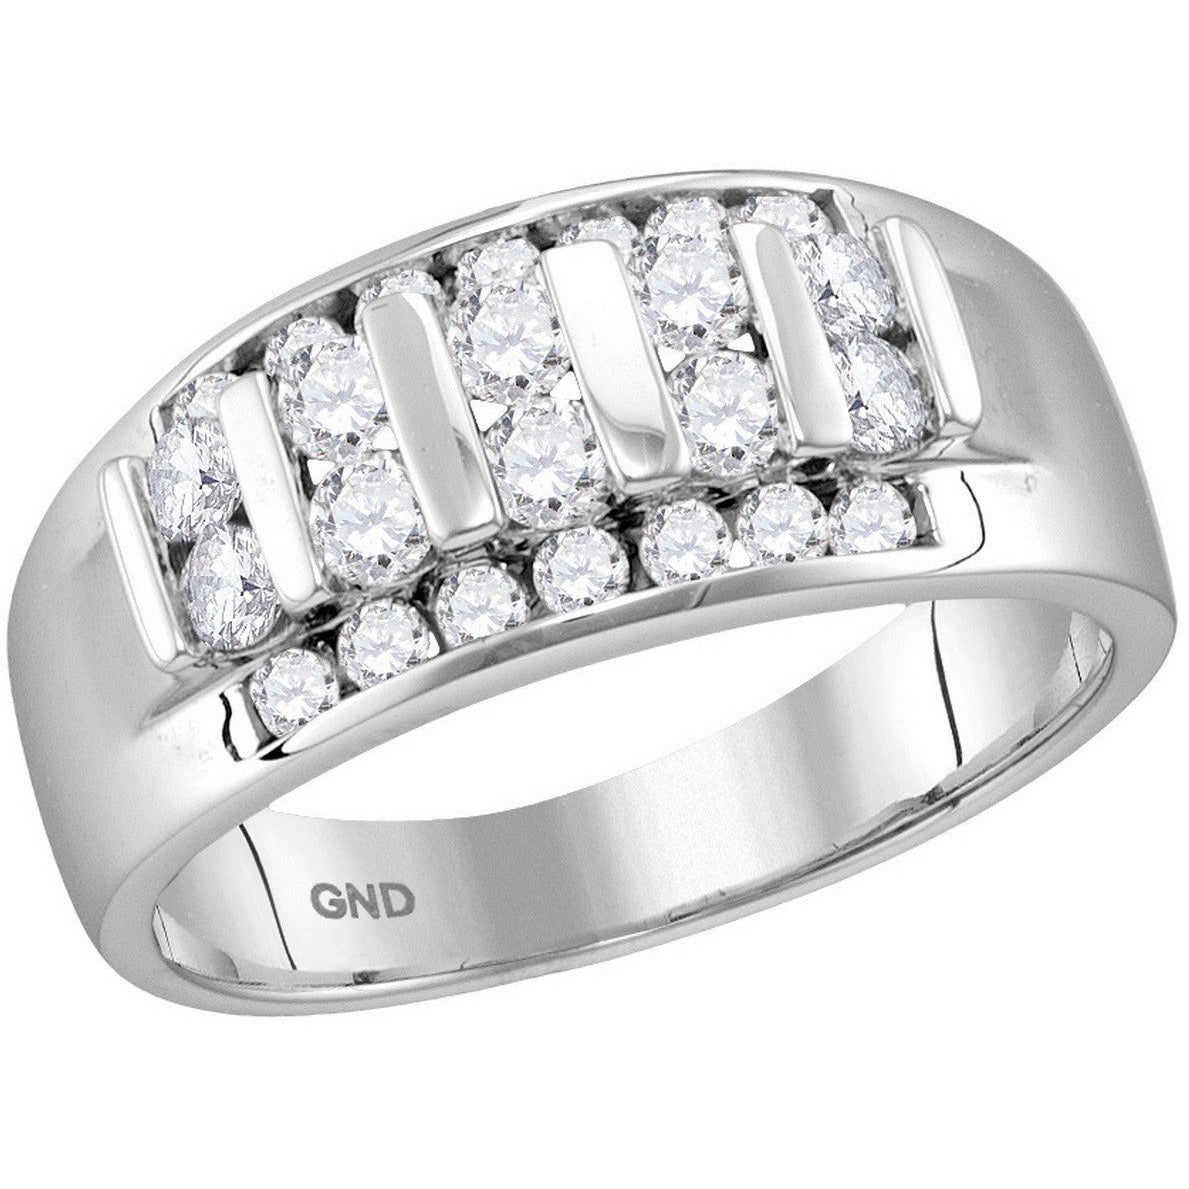 10kt White Gold Mens Round Channel-set Diamond Raised Wedding Band 1.00 Cttw 114752 - shirin-diamonds